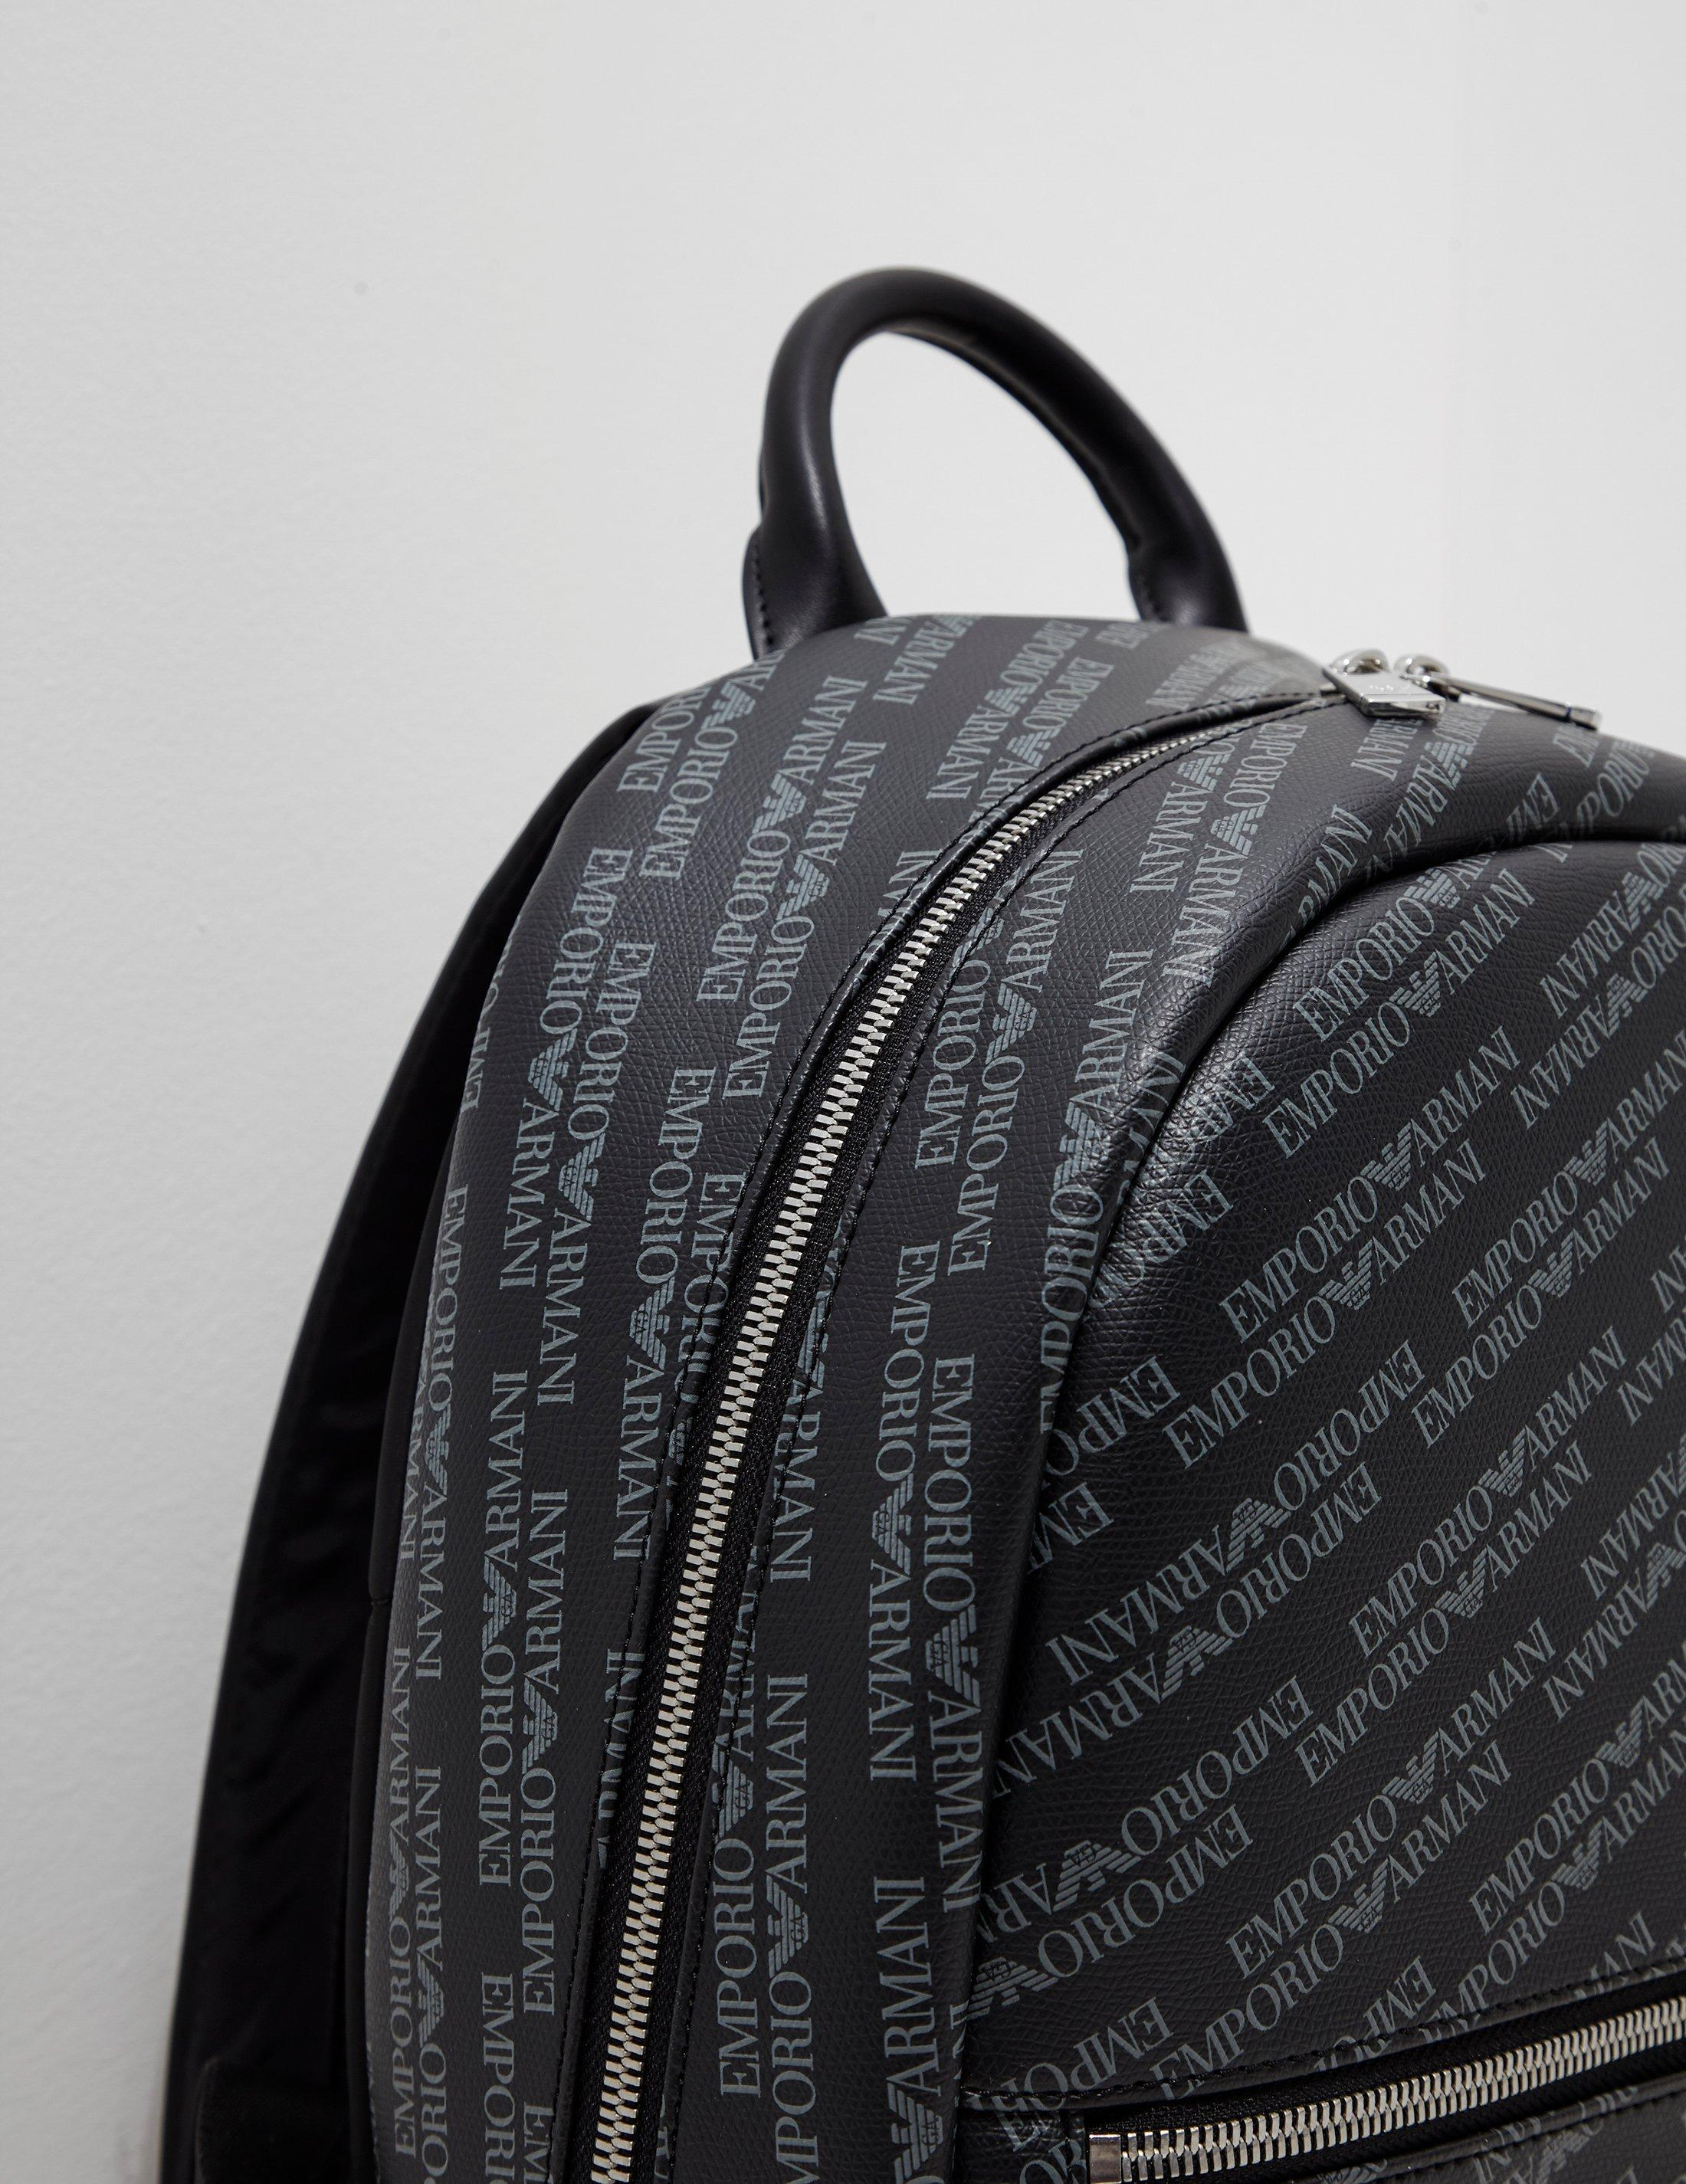 Lyst - Emporio Armani Mens All Over Print Backpack Black in Black ... 1f9c6c68aa